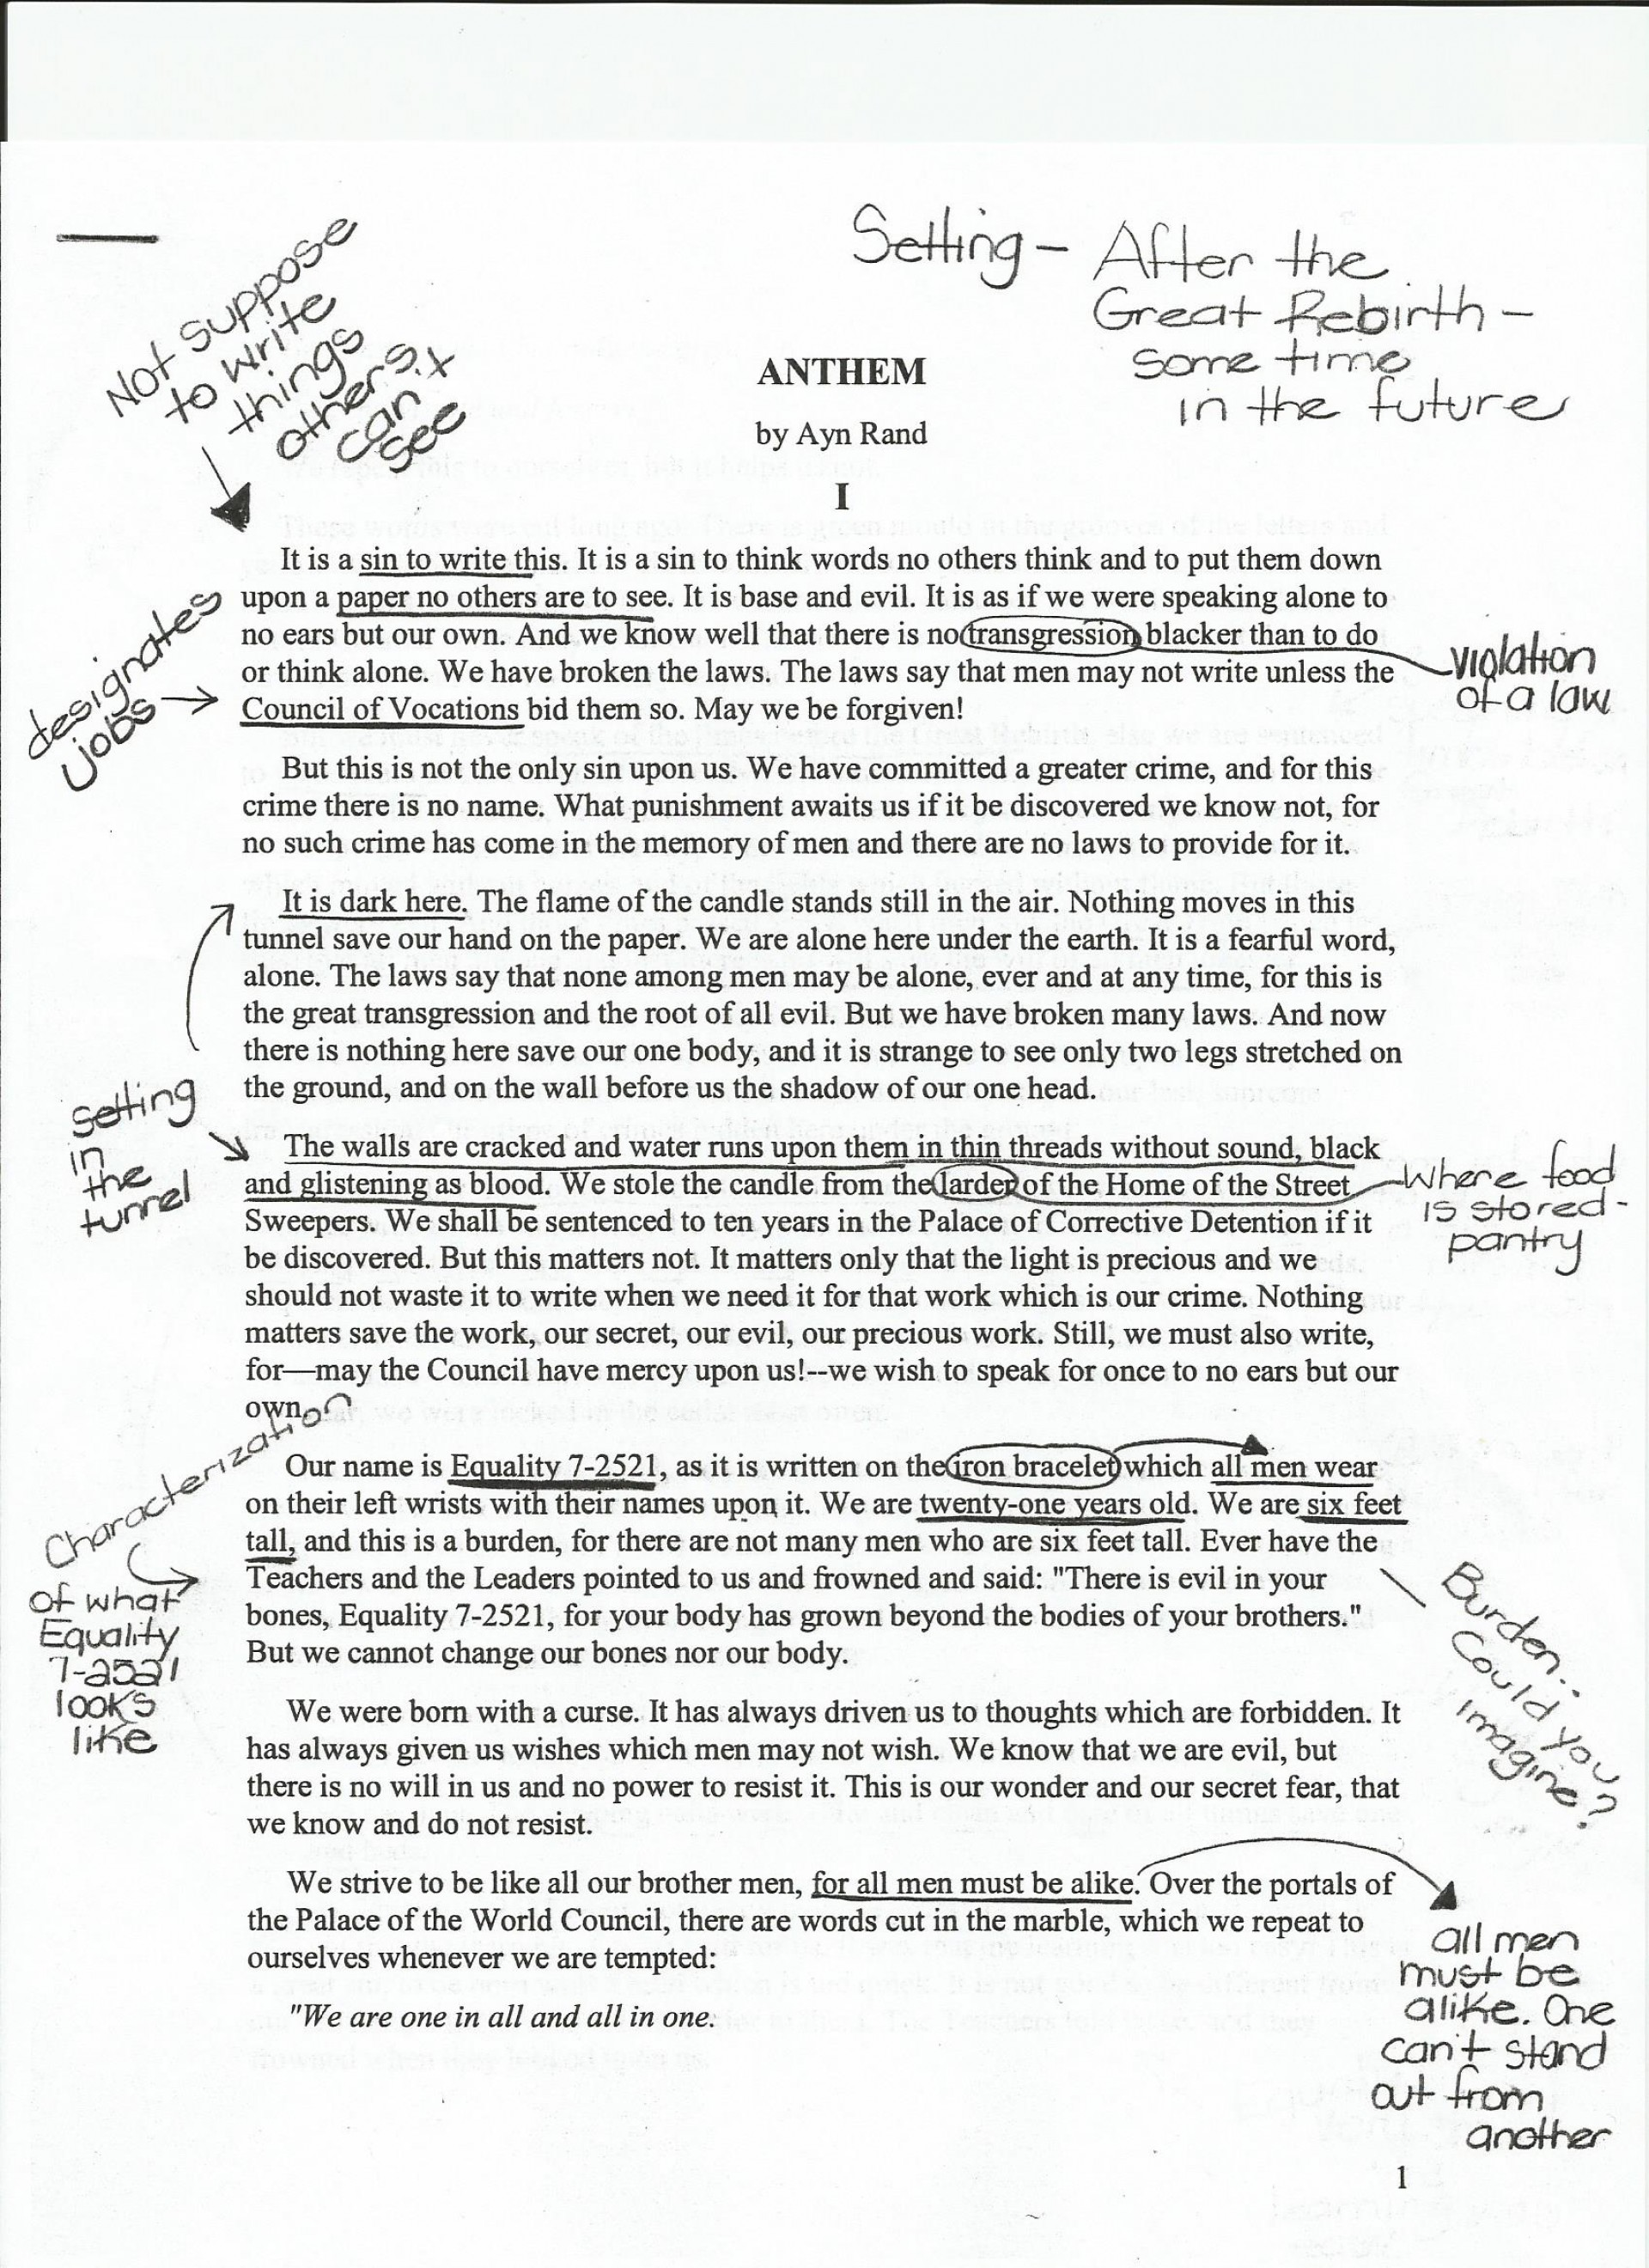 009 Anthem20annotations20example201 Essay Example How Tonotate Wondrous To Annotate An A Movie In Critical 1920